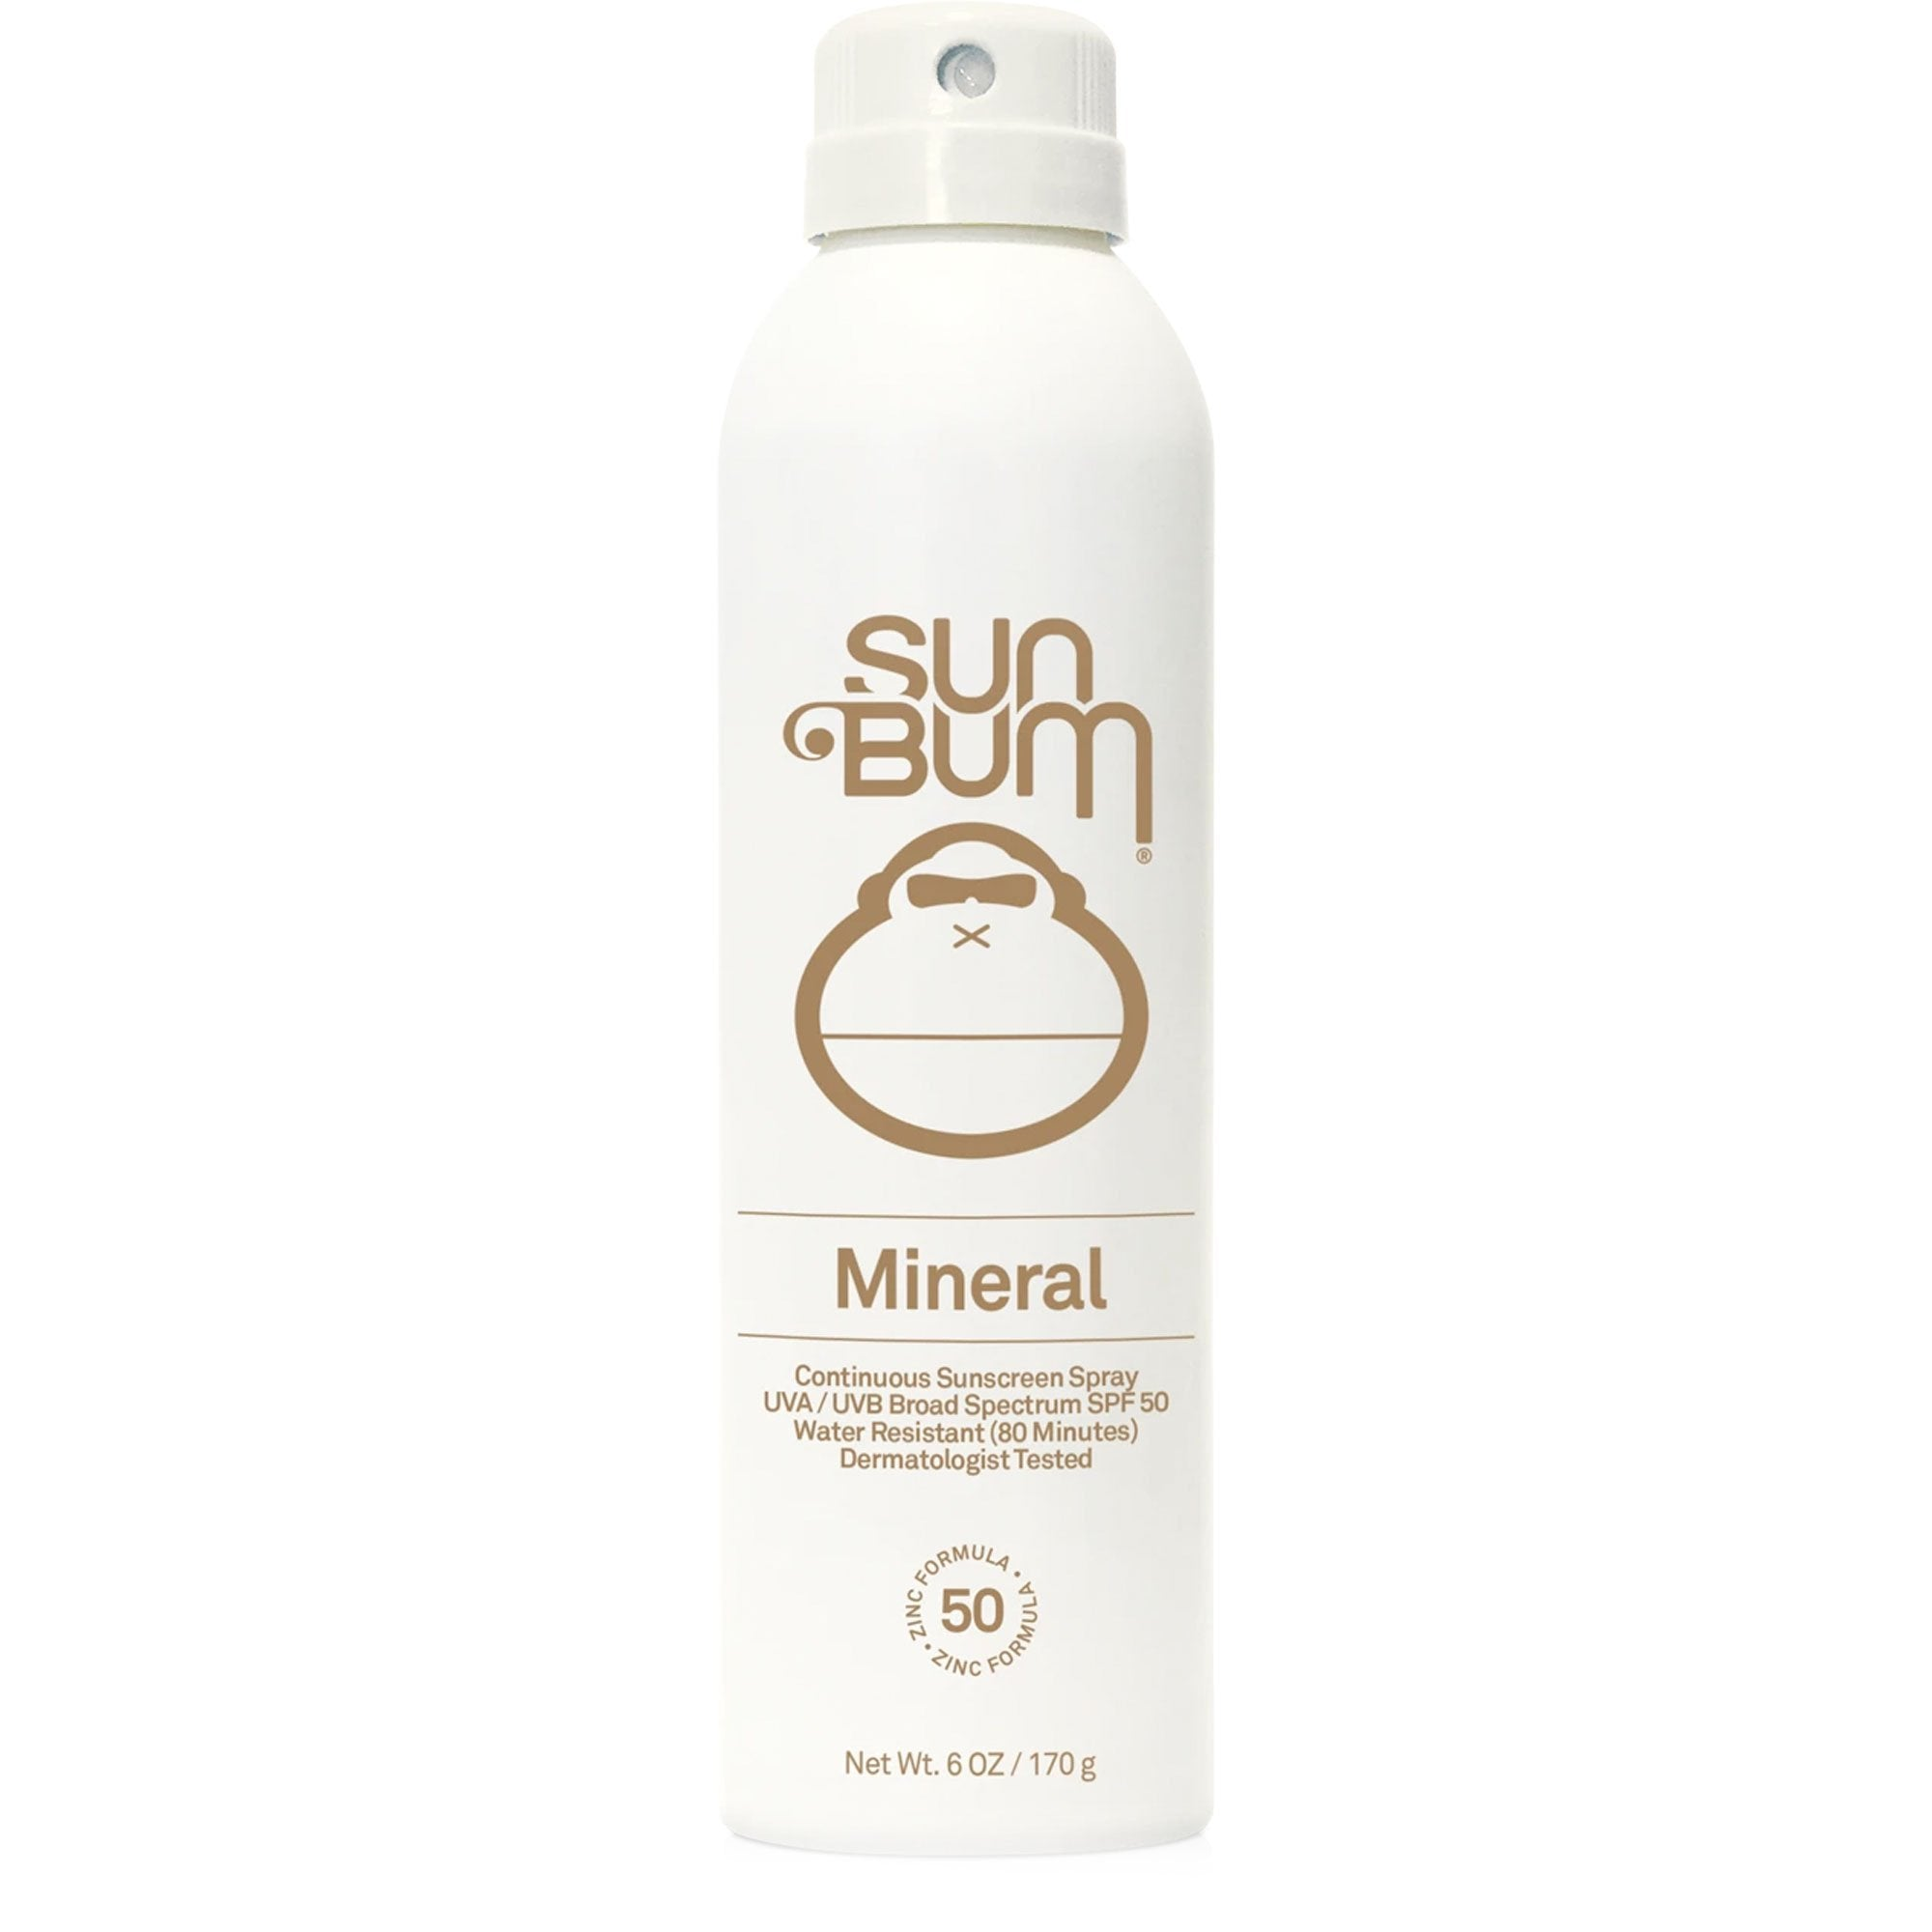 Sun Bum Mineral Sunscreen Spray - SPF 50